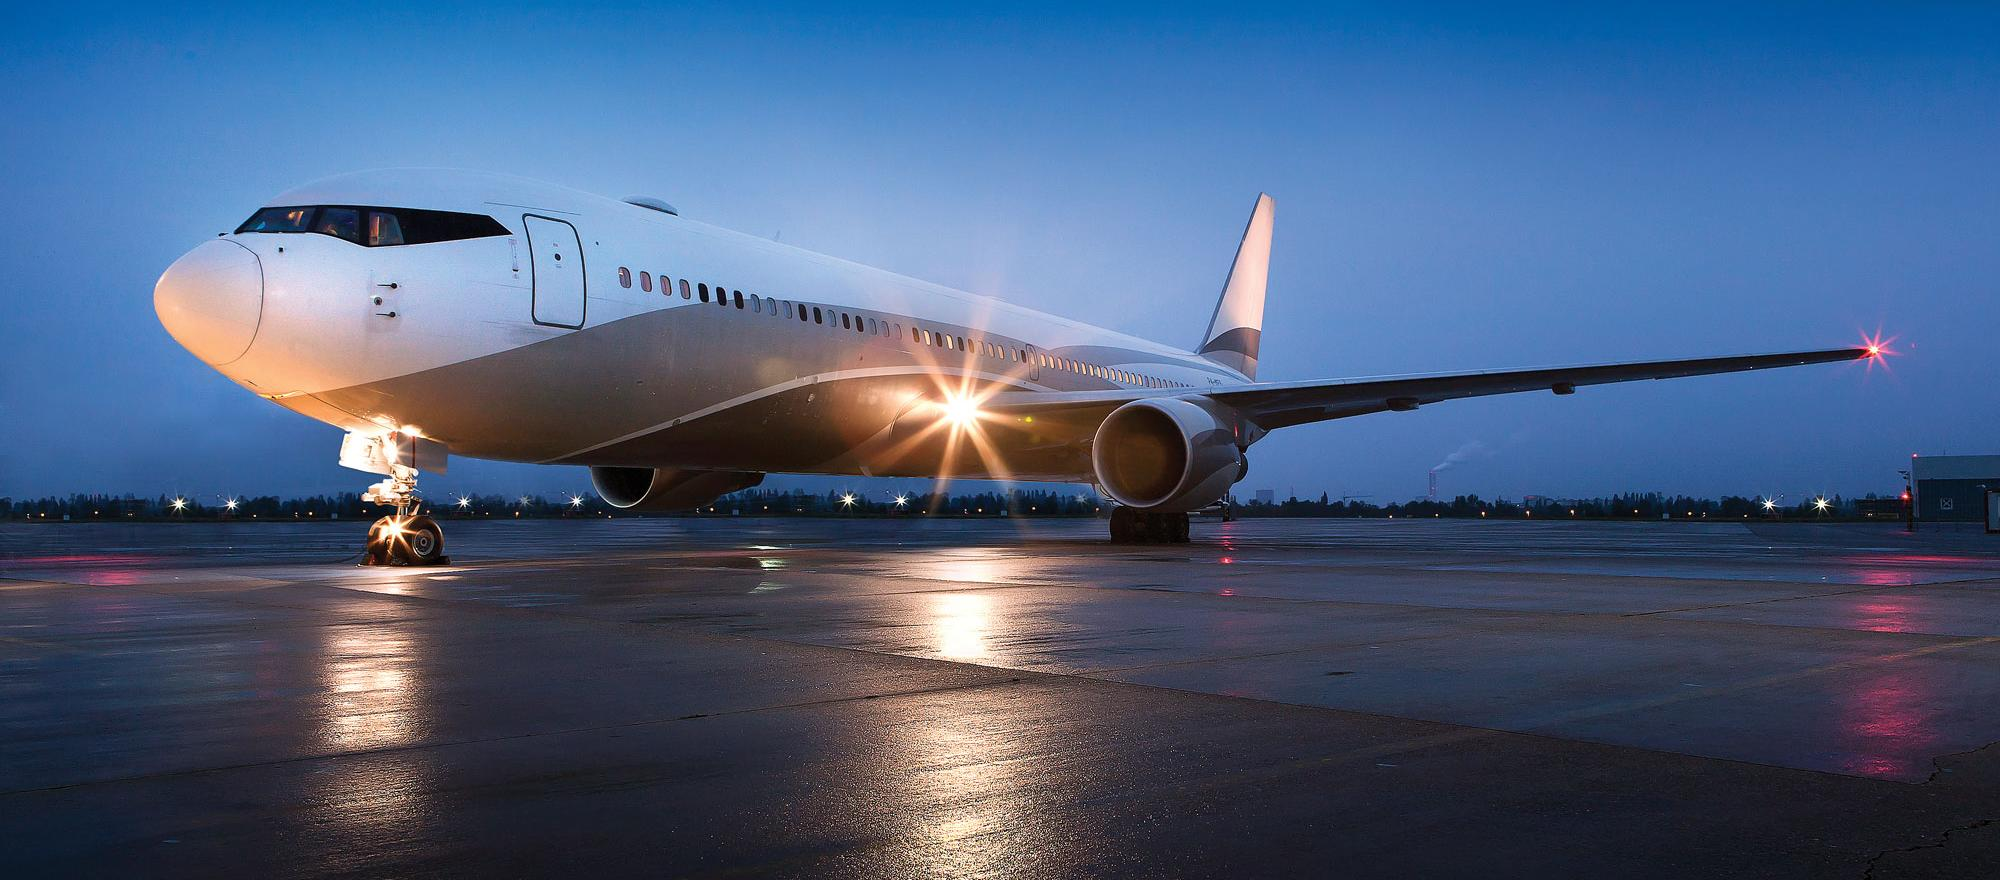 Boeing 767 on the tarmac.